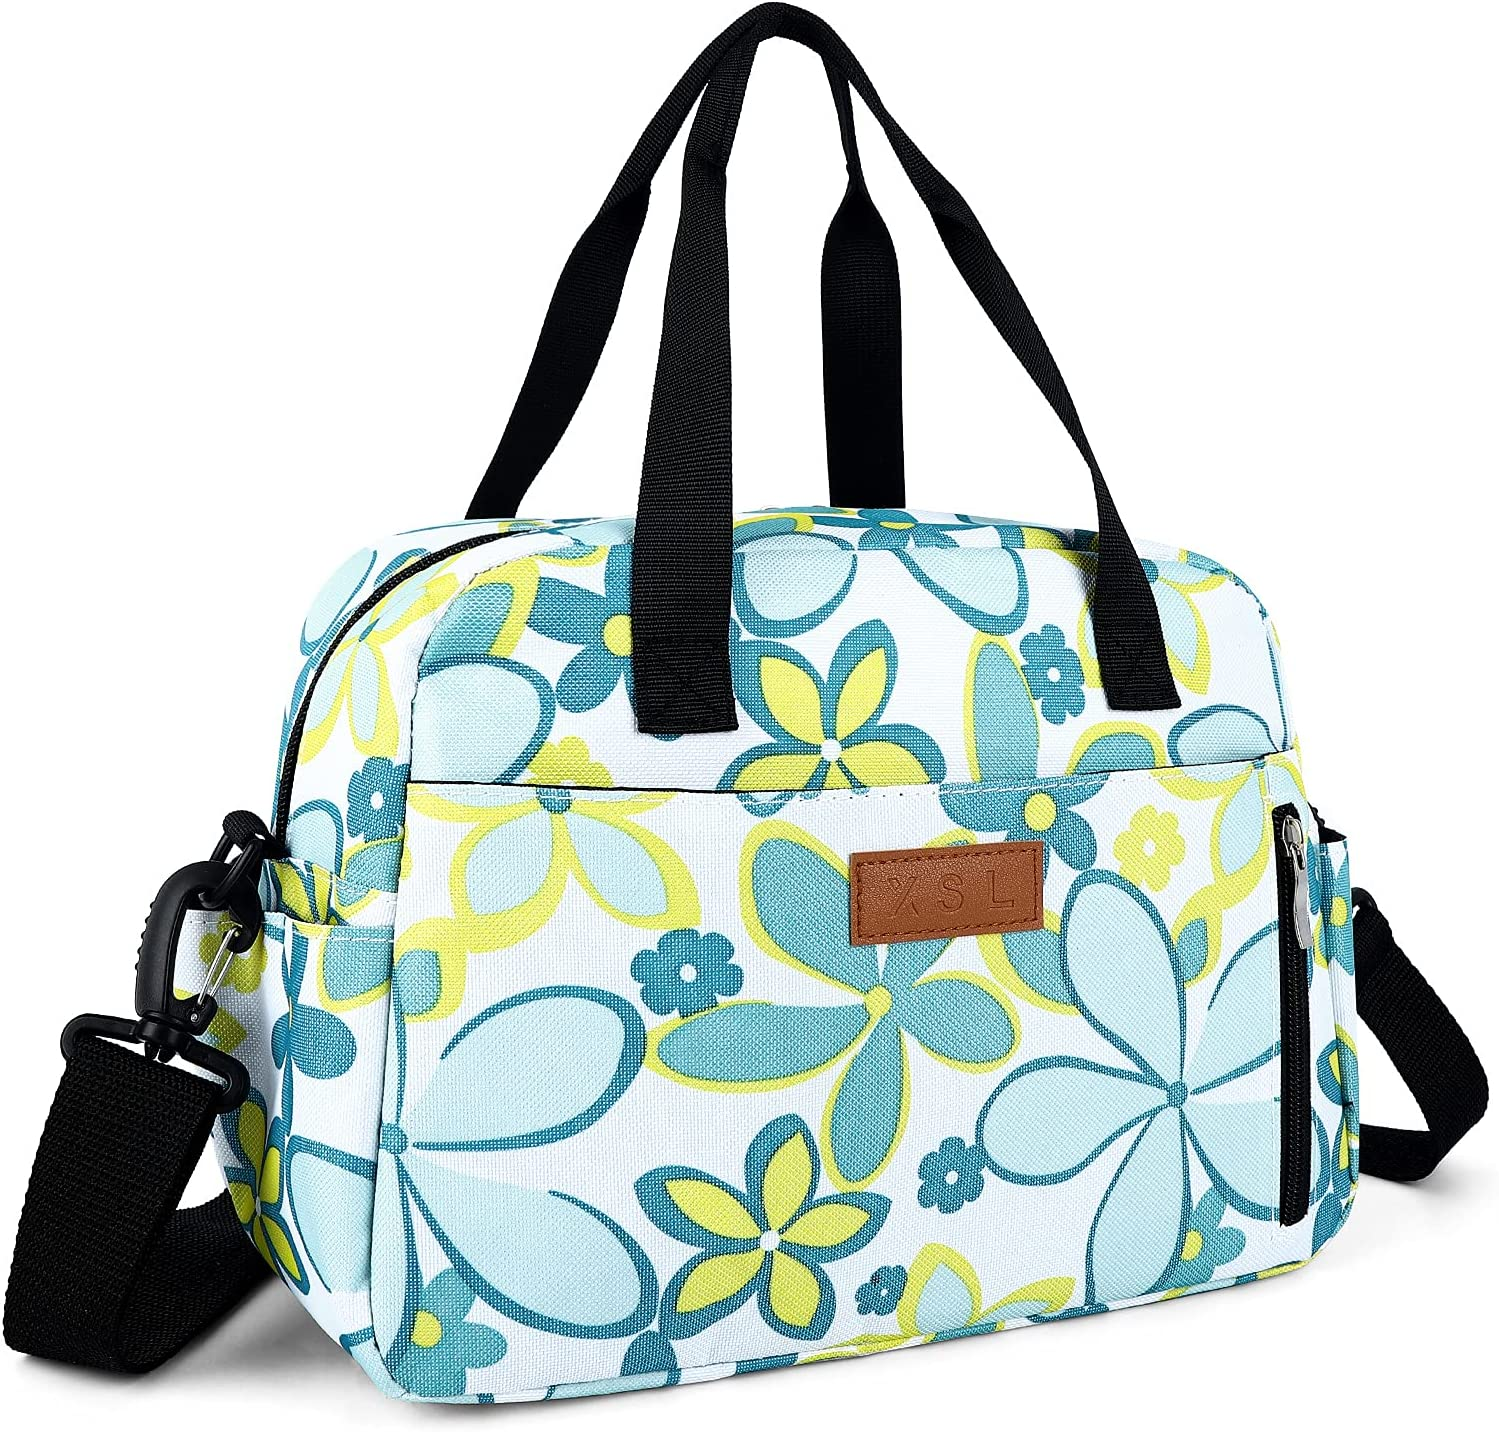 Insulated Lunch Bag Tote for B Cooler Alternative dealer Super sale period limited Portable Women -